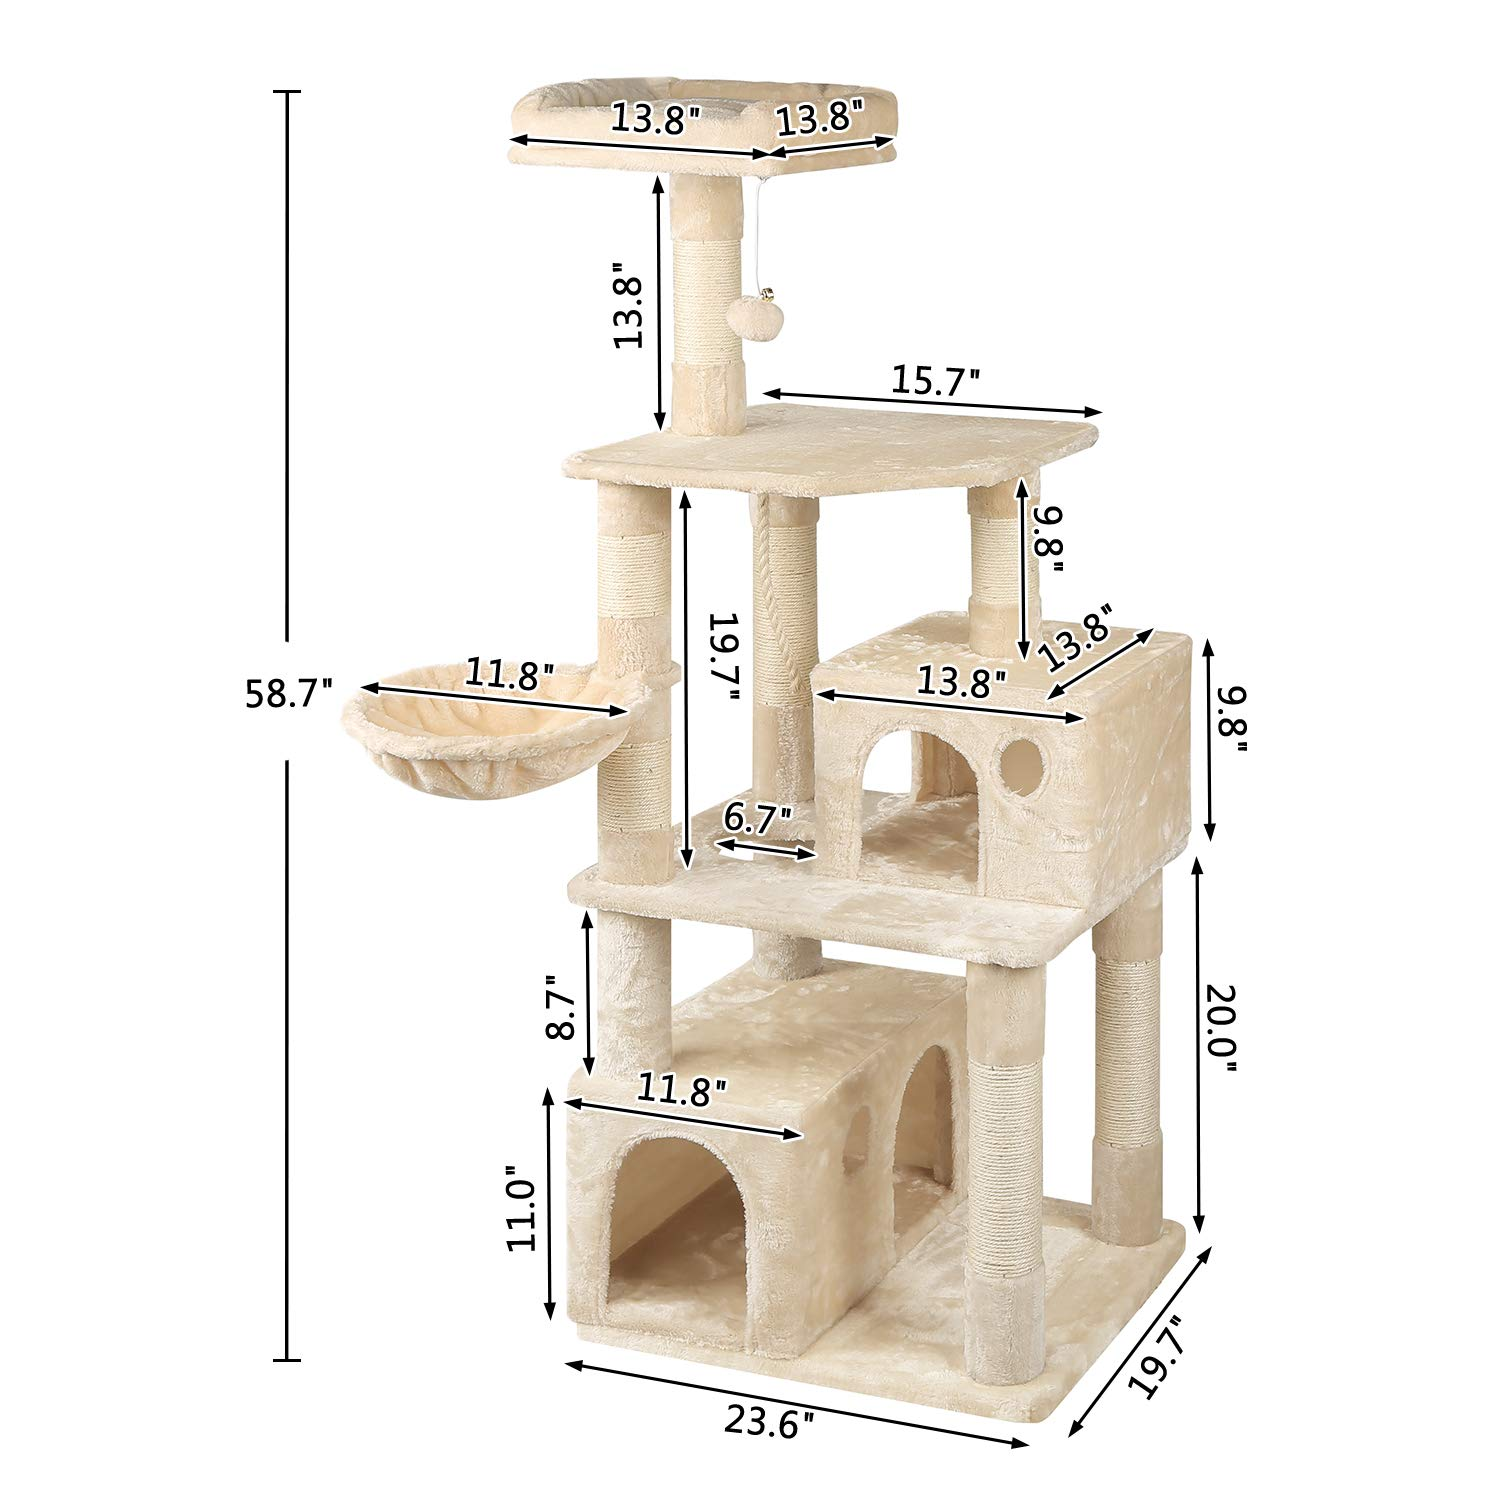 WLIVE 59'' Large Cat Tree Condo with Sisal Scratching Posts, 2 Plush Condos and Basket Lounger, Cat Tower Furniture WF062A by WLIVE (Image #6)